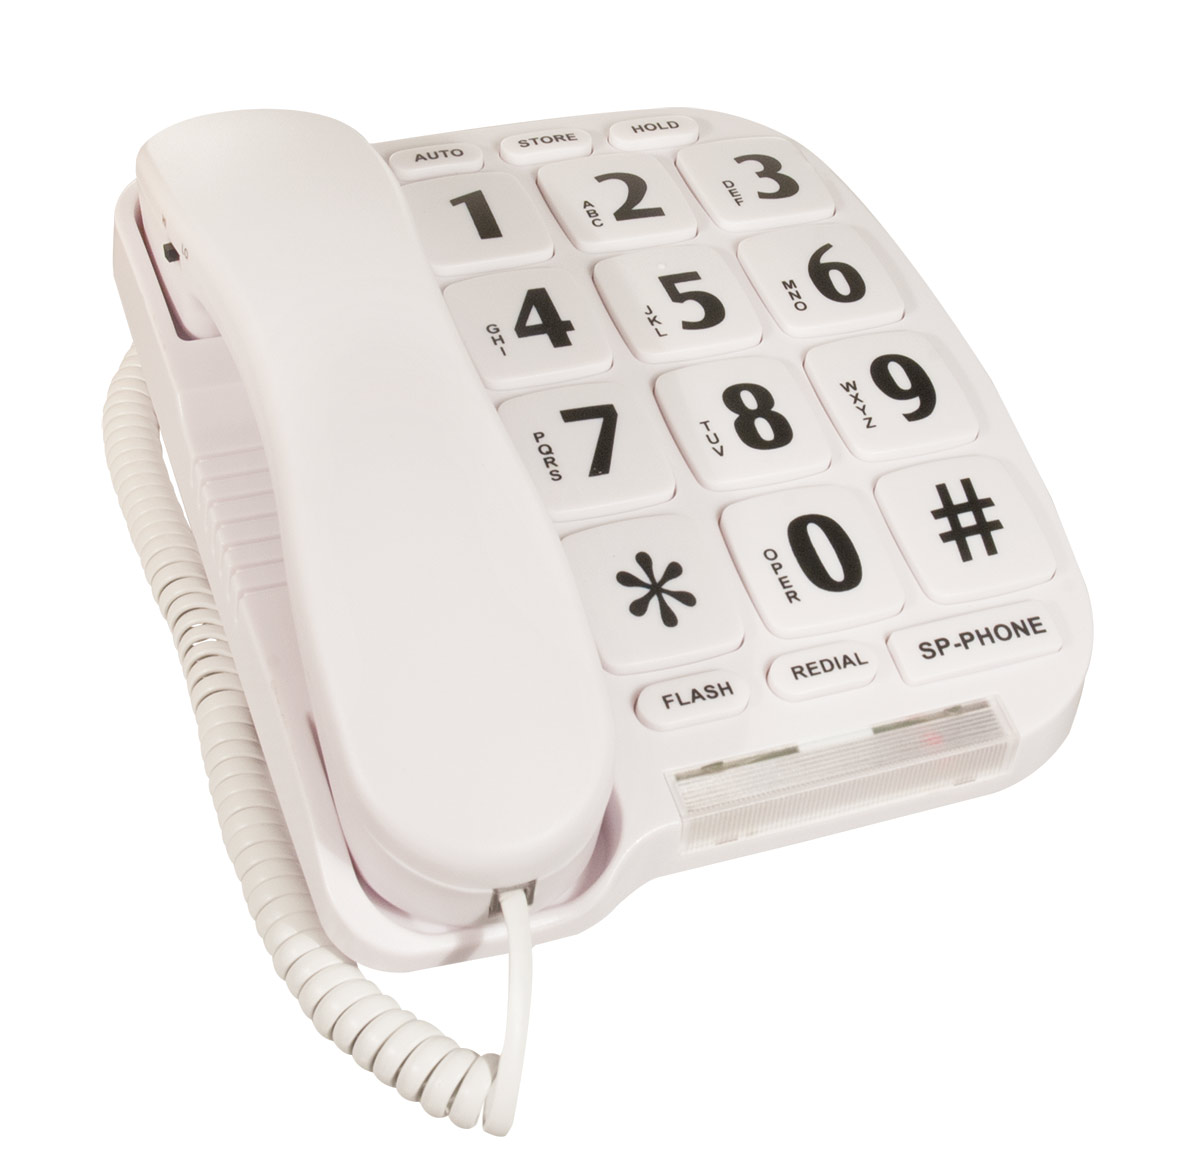 Large Button Telephone- White Color